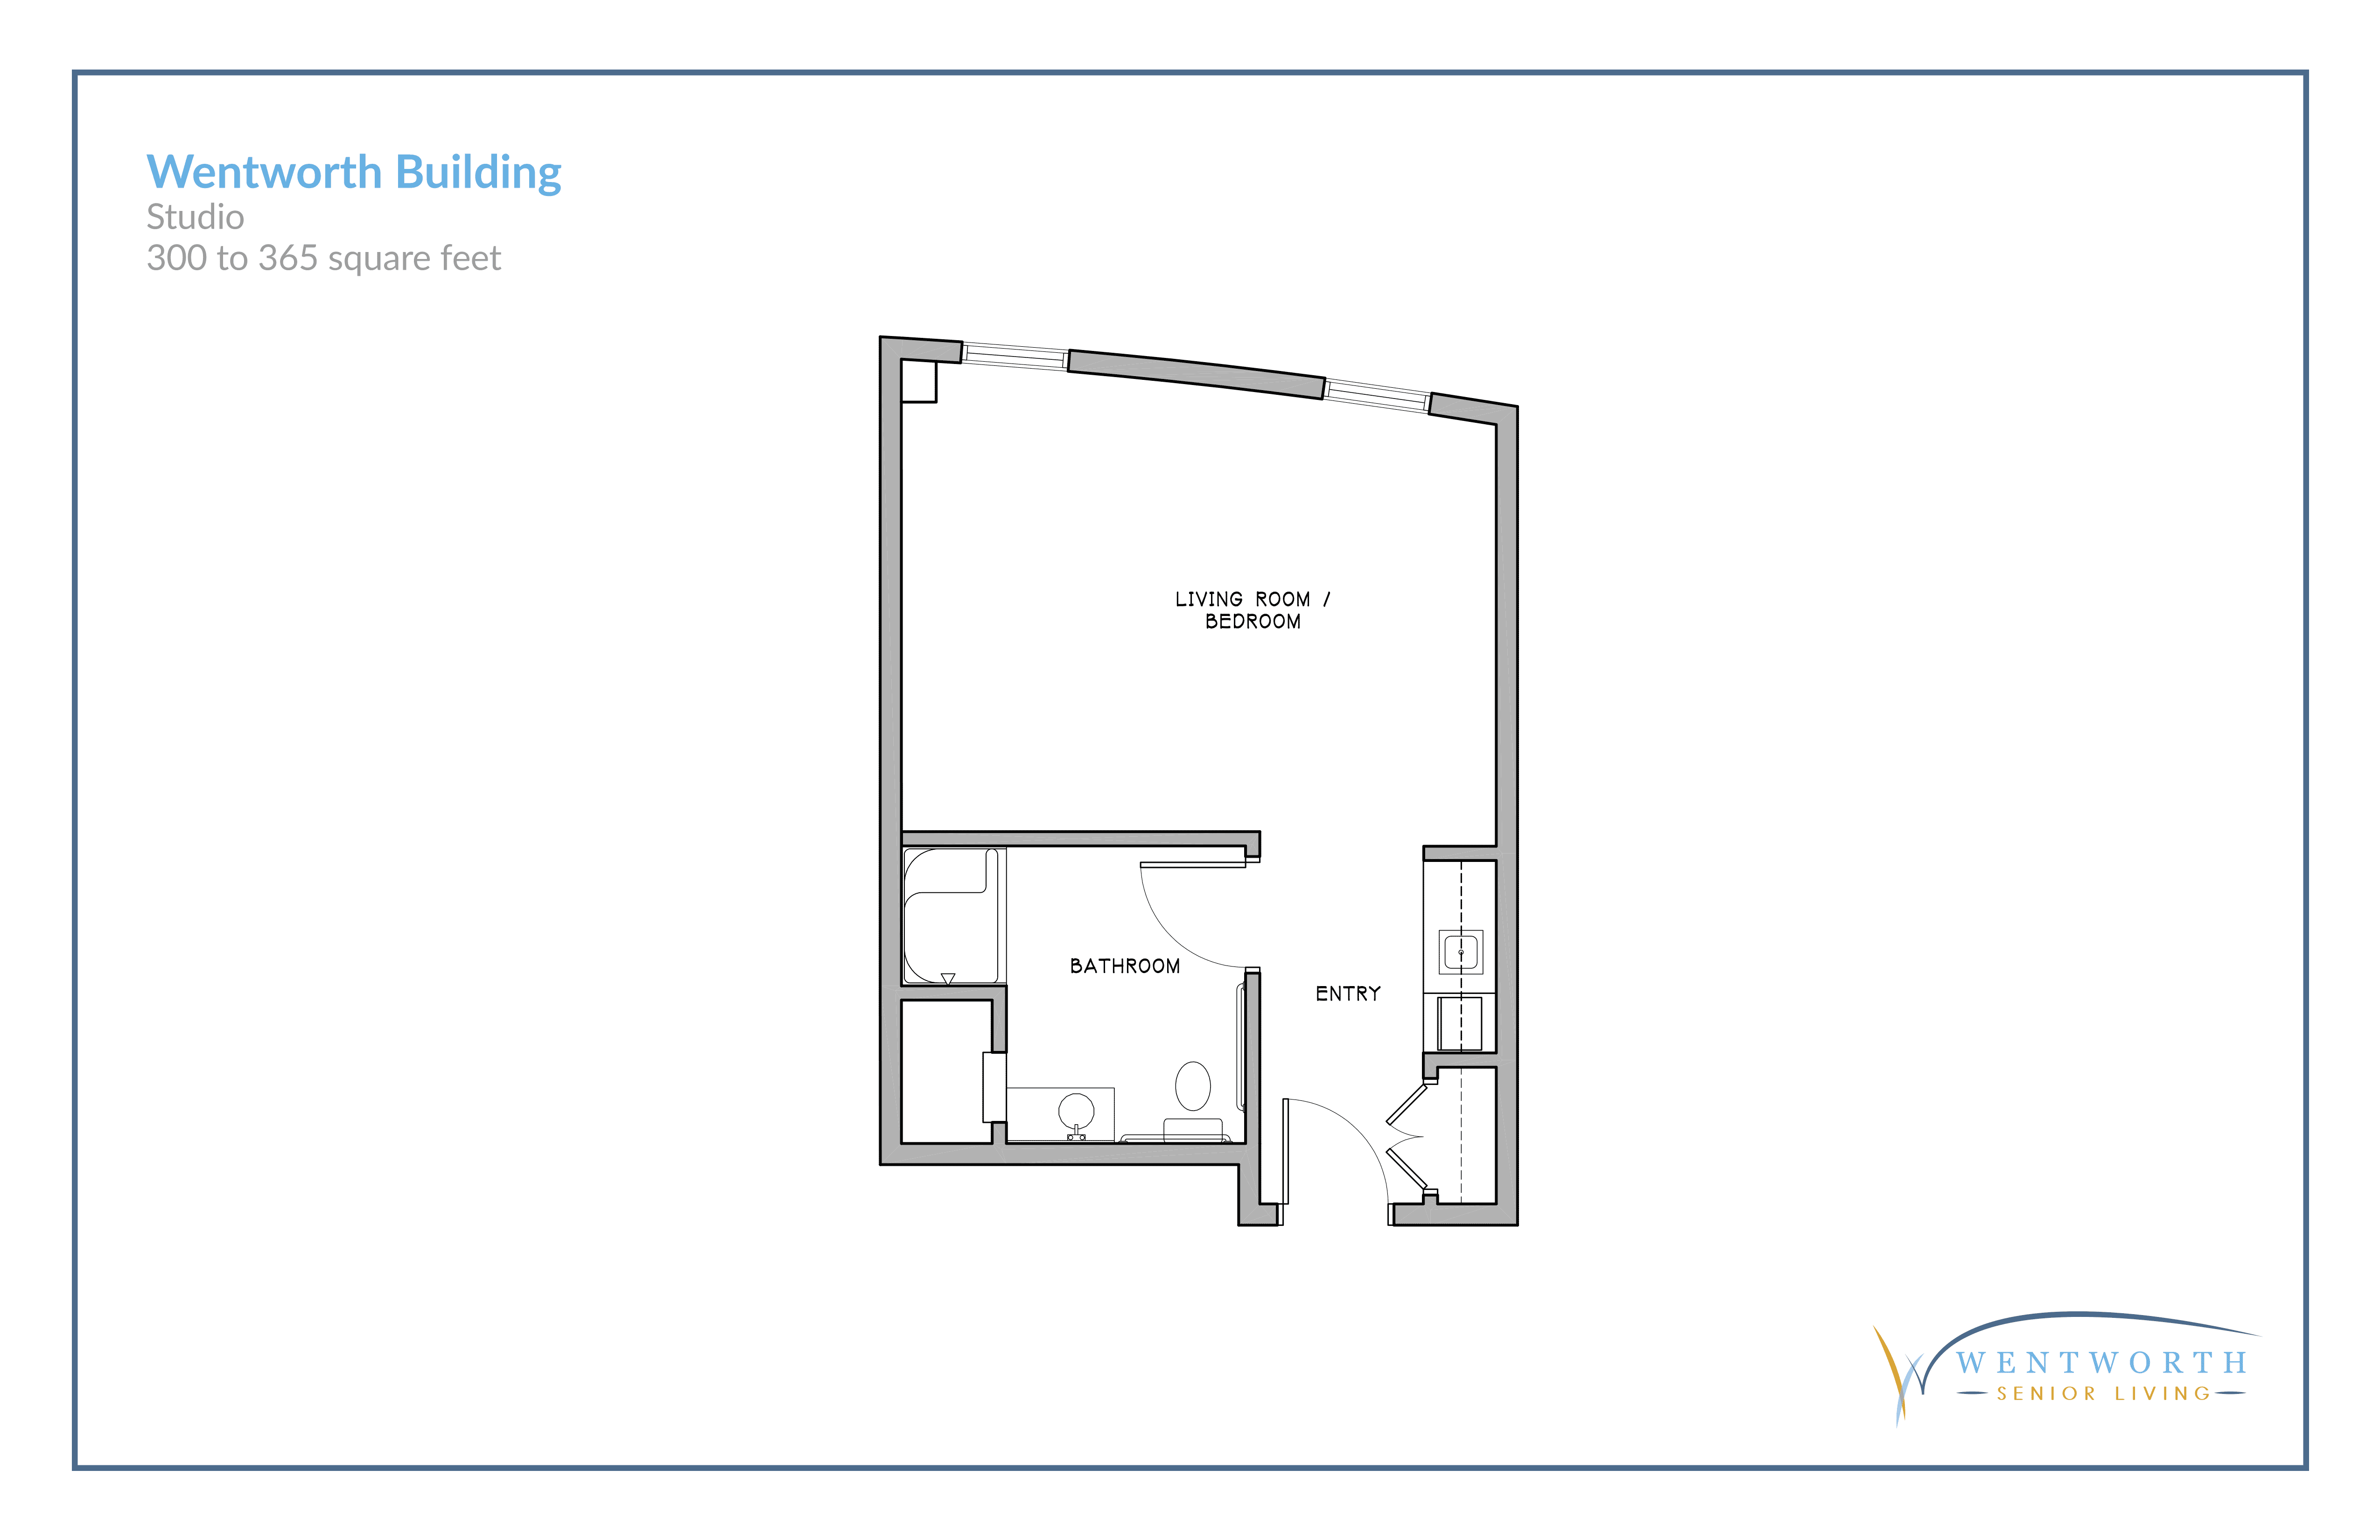 Floor plan for a studio unit.